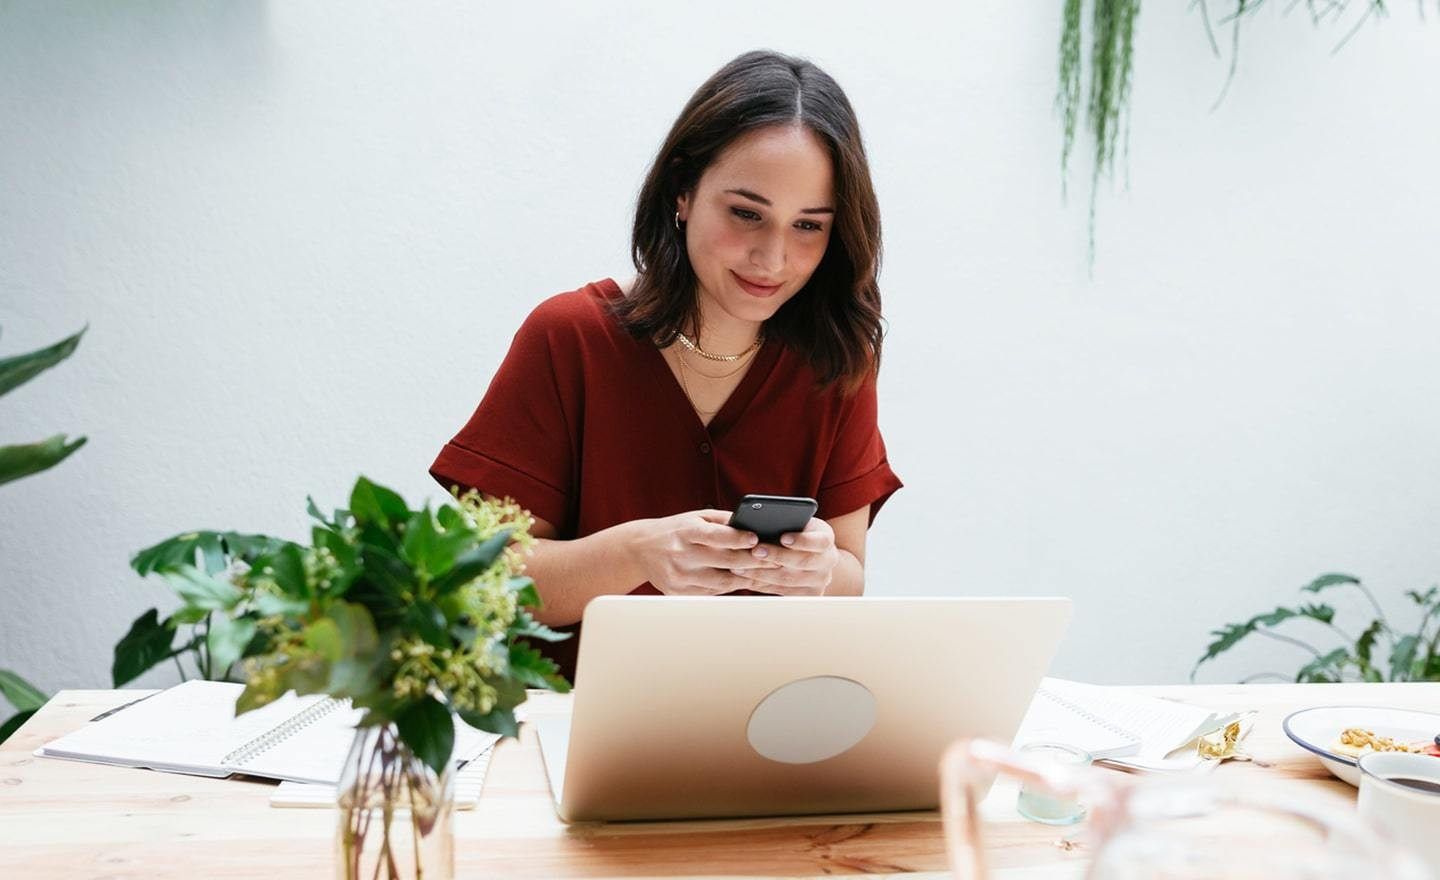 Woman working on laptop and phone